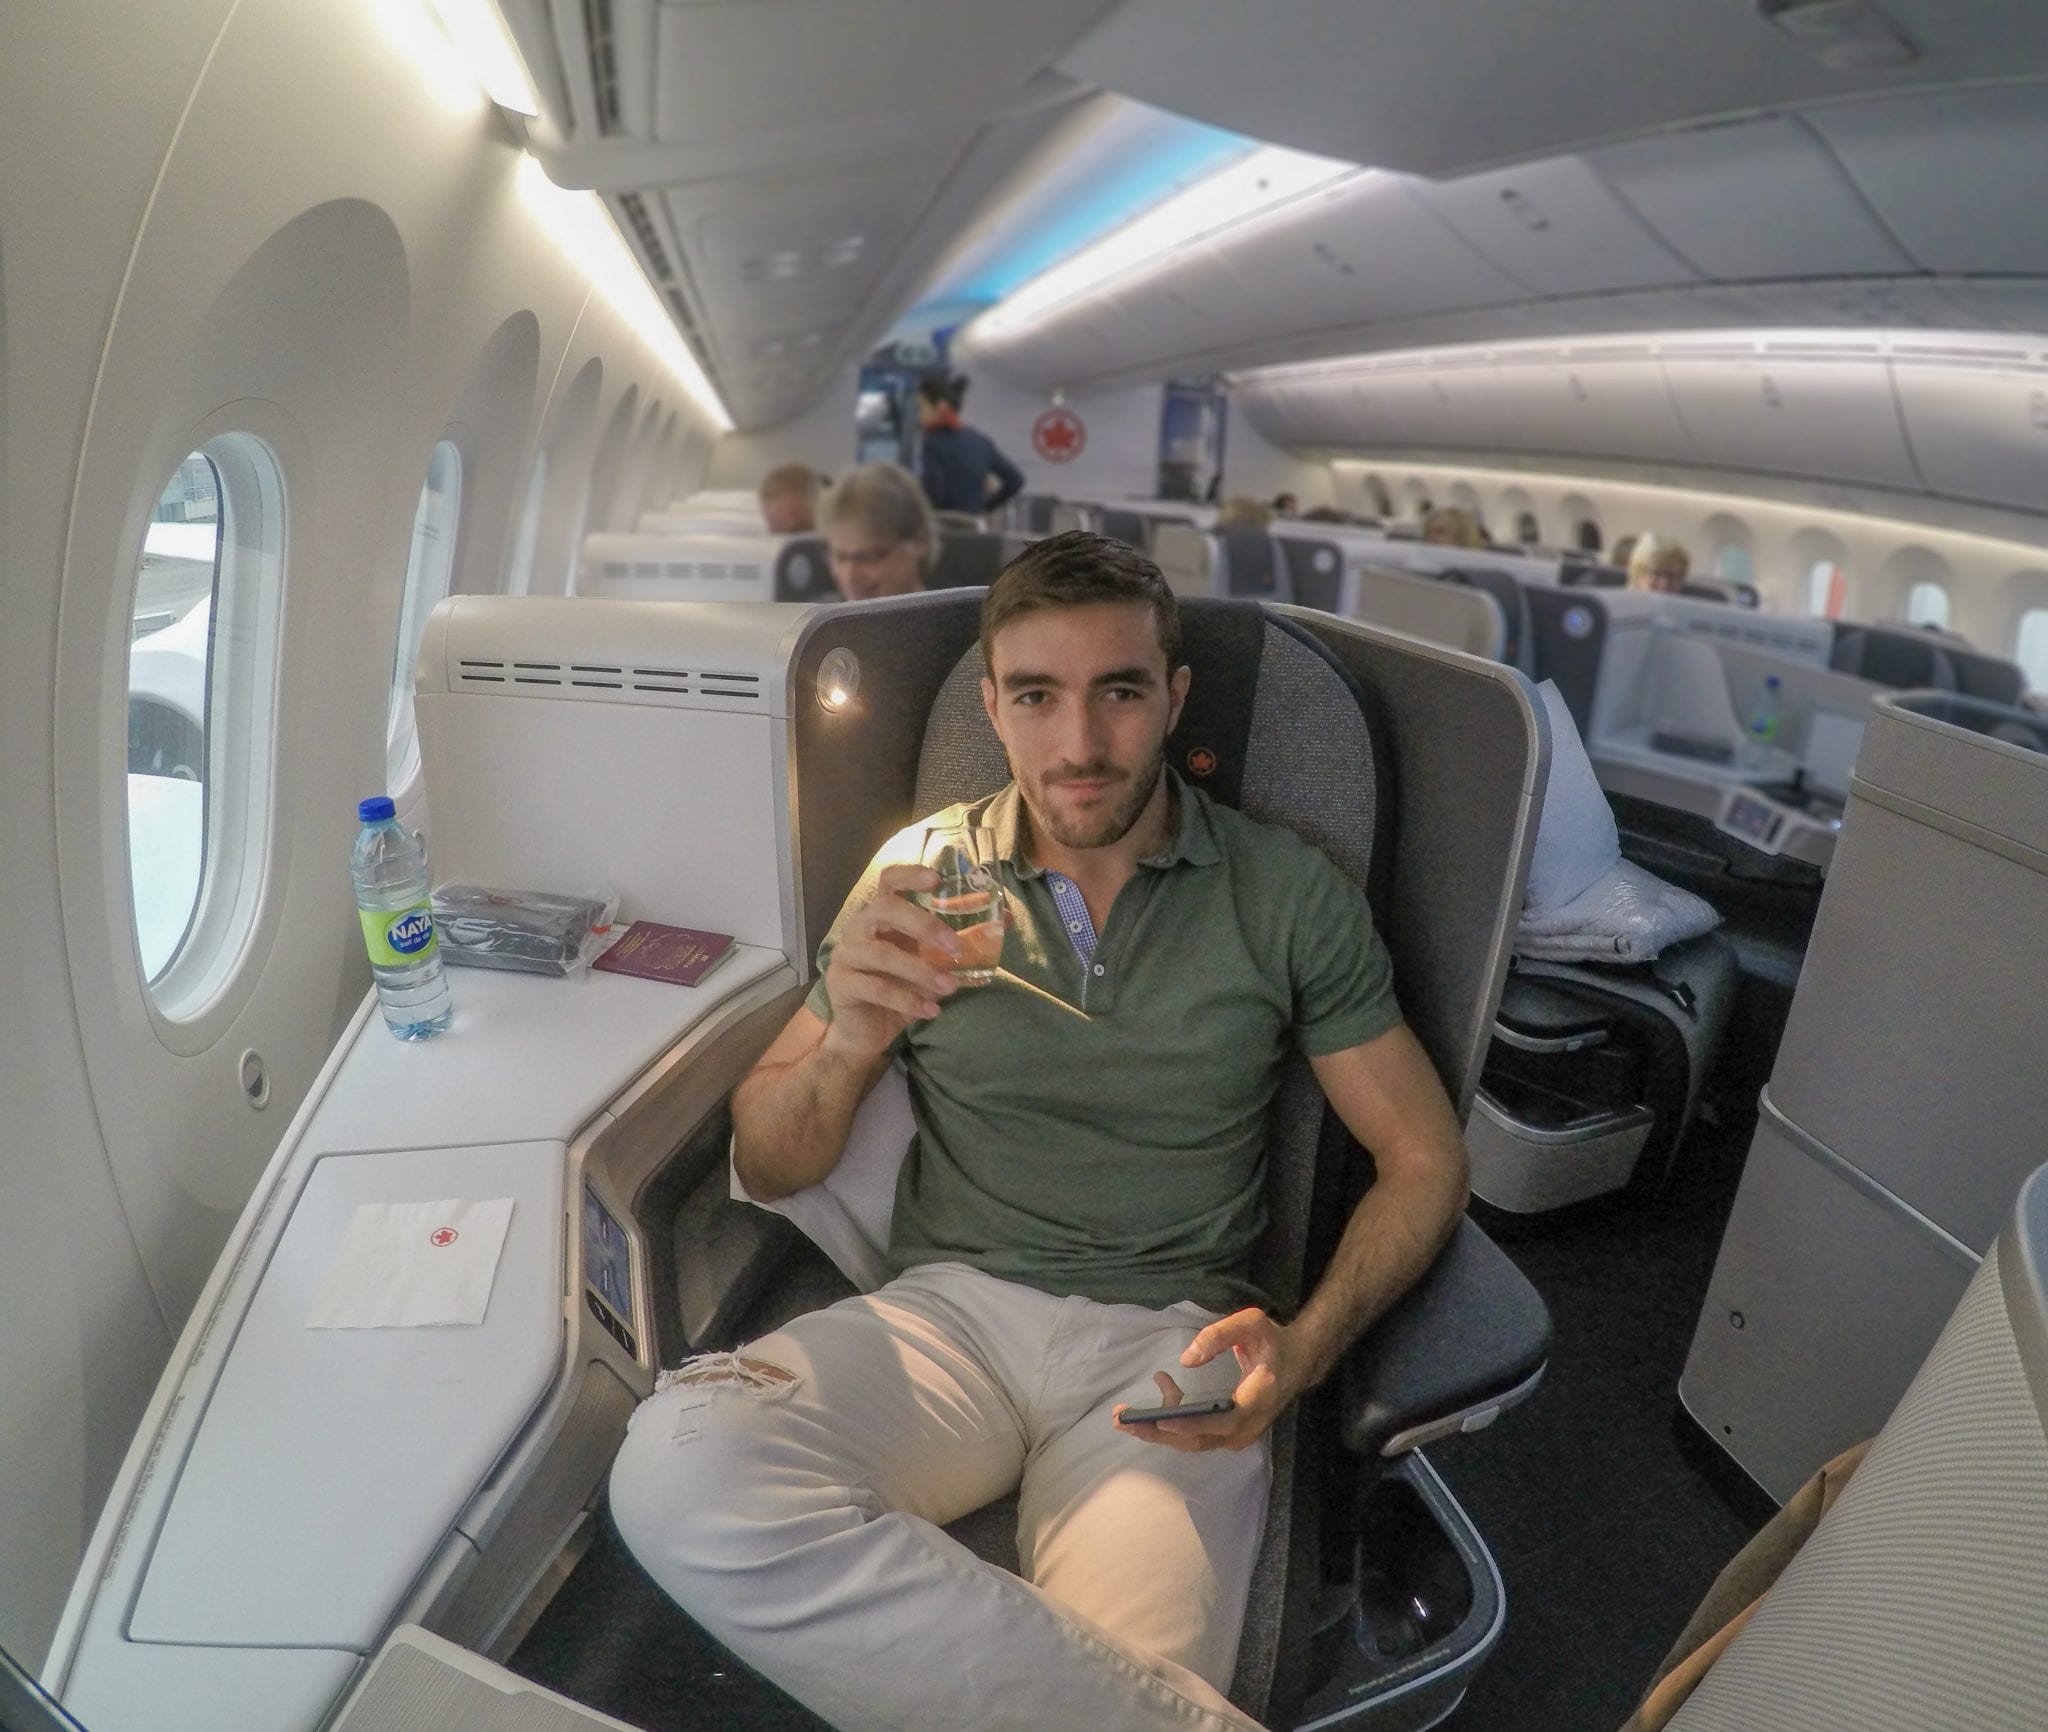 AC dreamliner 10 - REVIEW - Qatar Airways : Q Suites Business Class - B777 - London (LHR) to Doha (DOH)